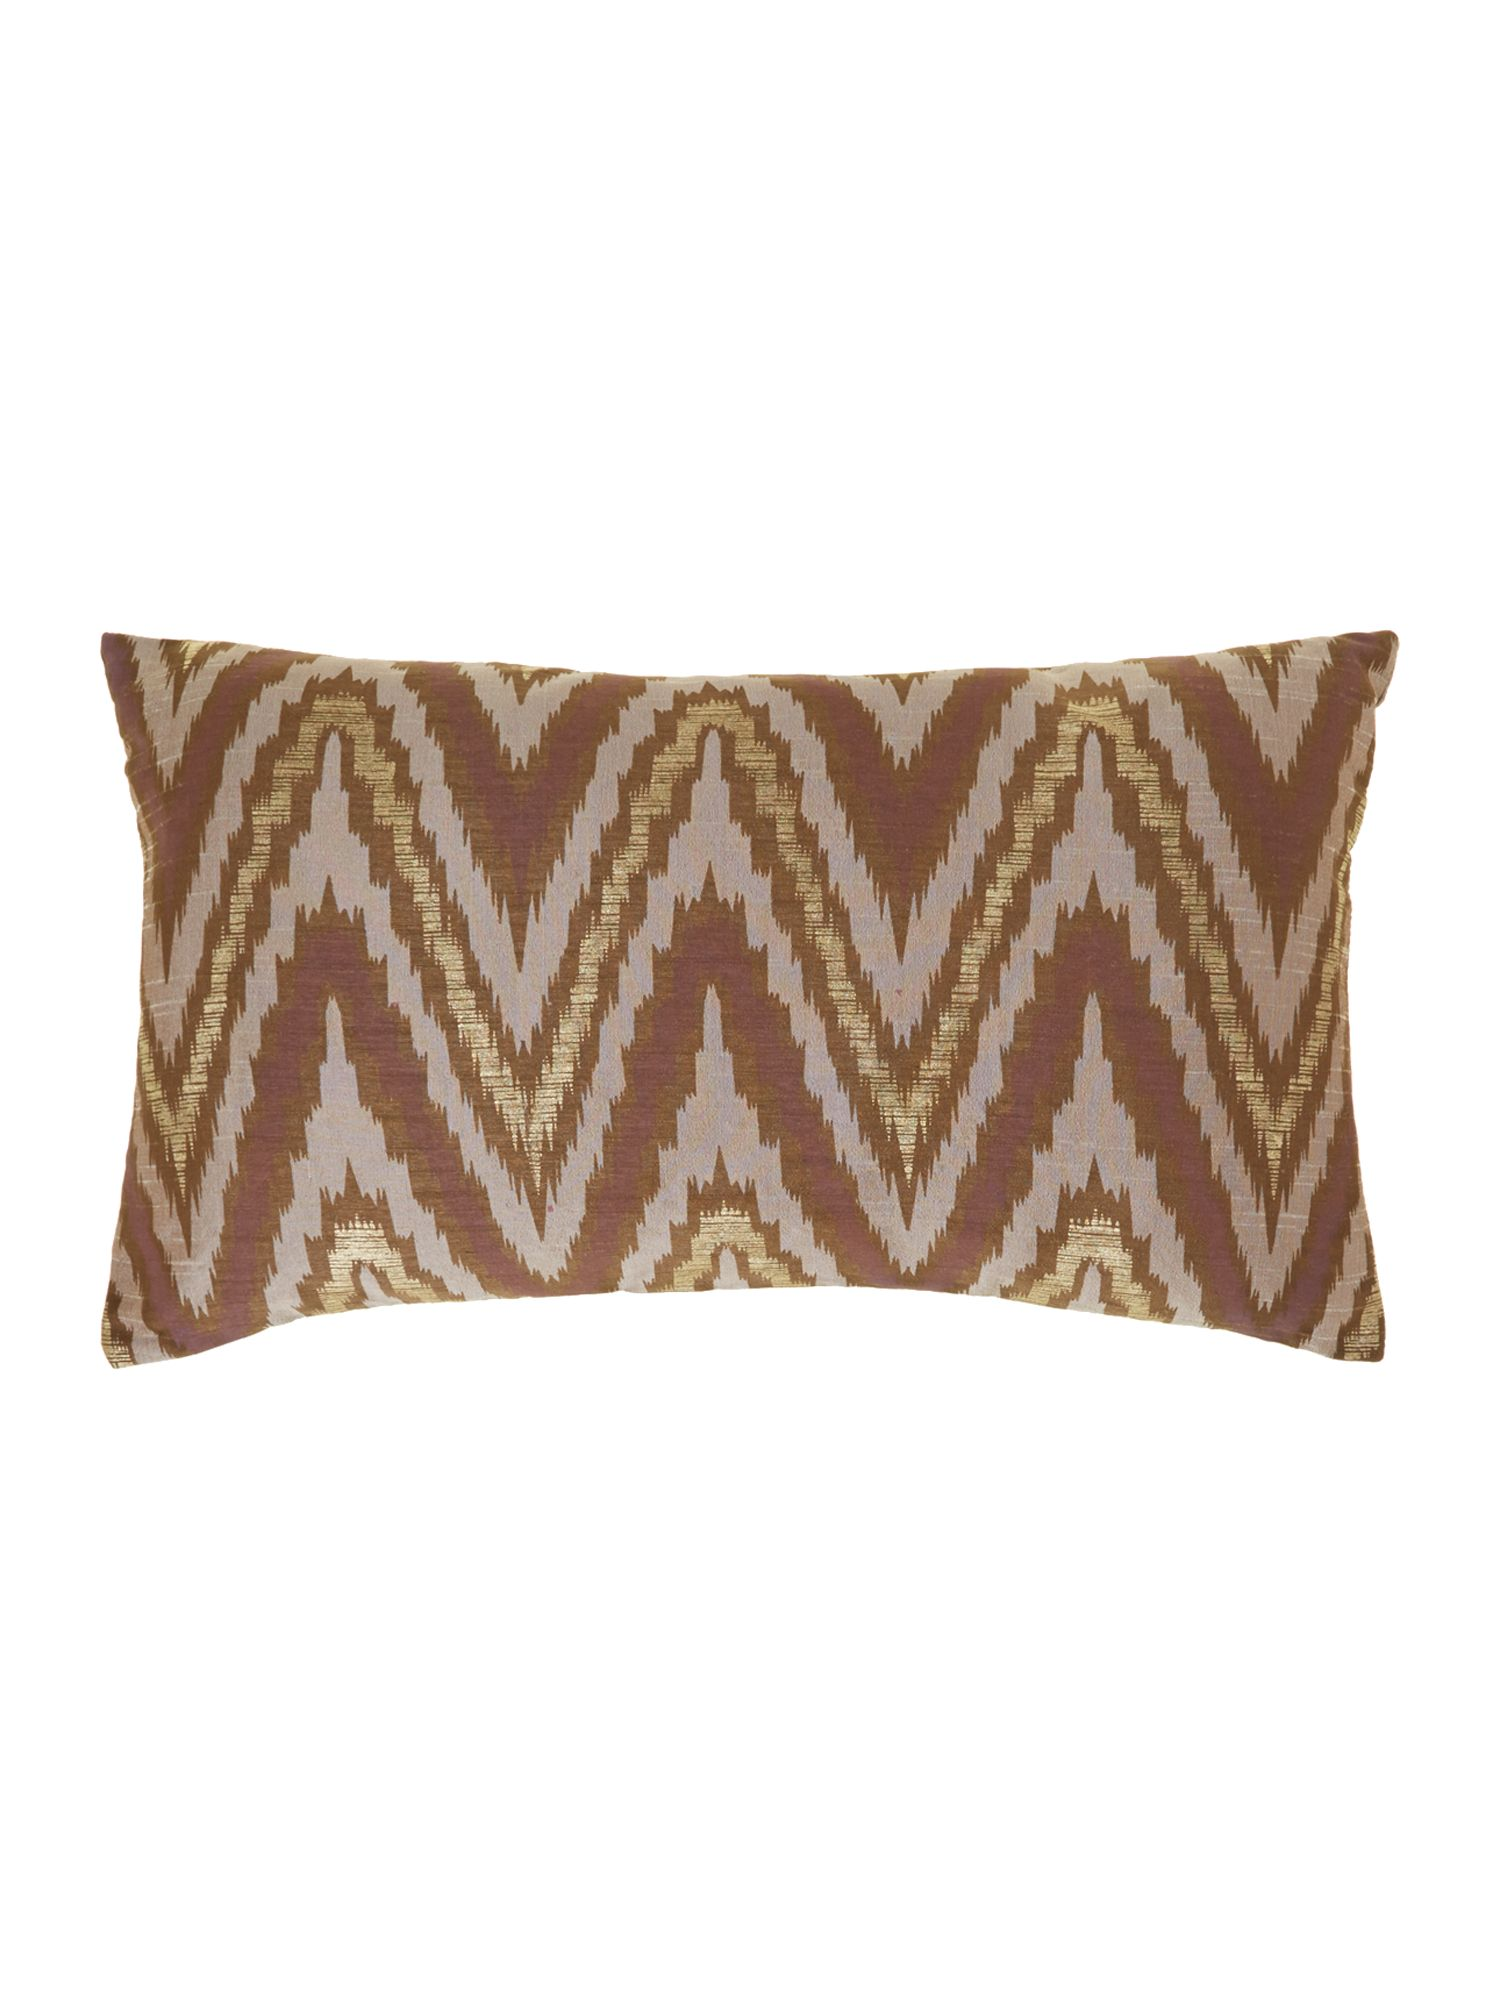 Ikat design oblong cushion, metallic